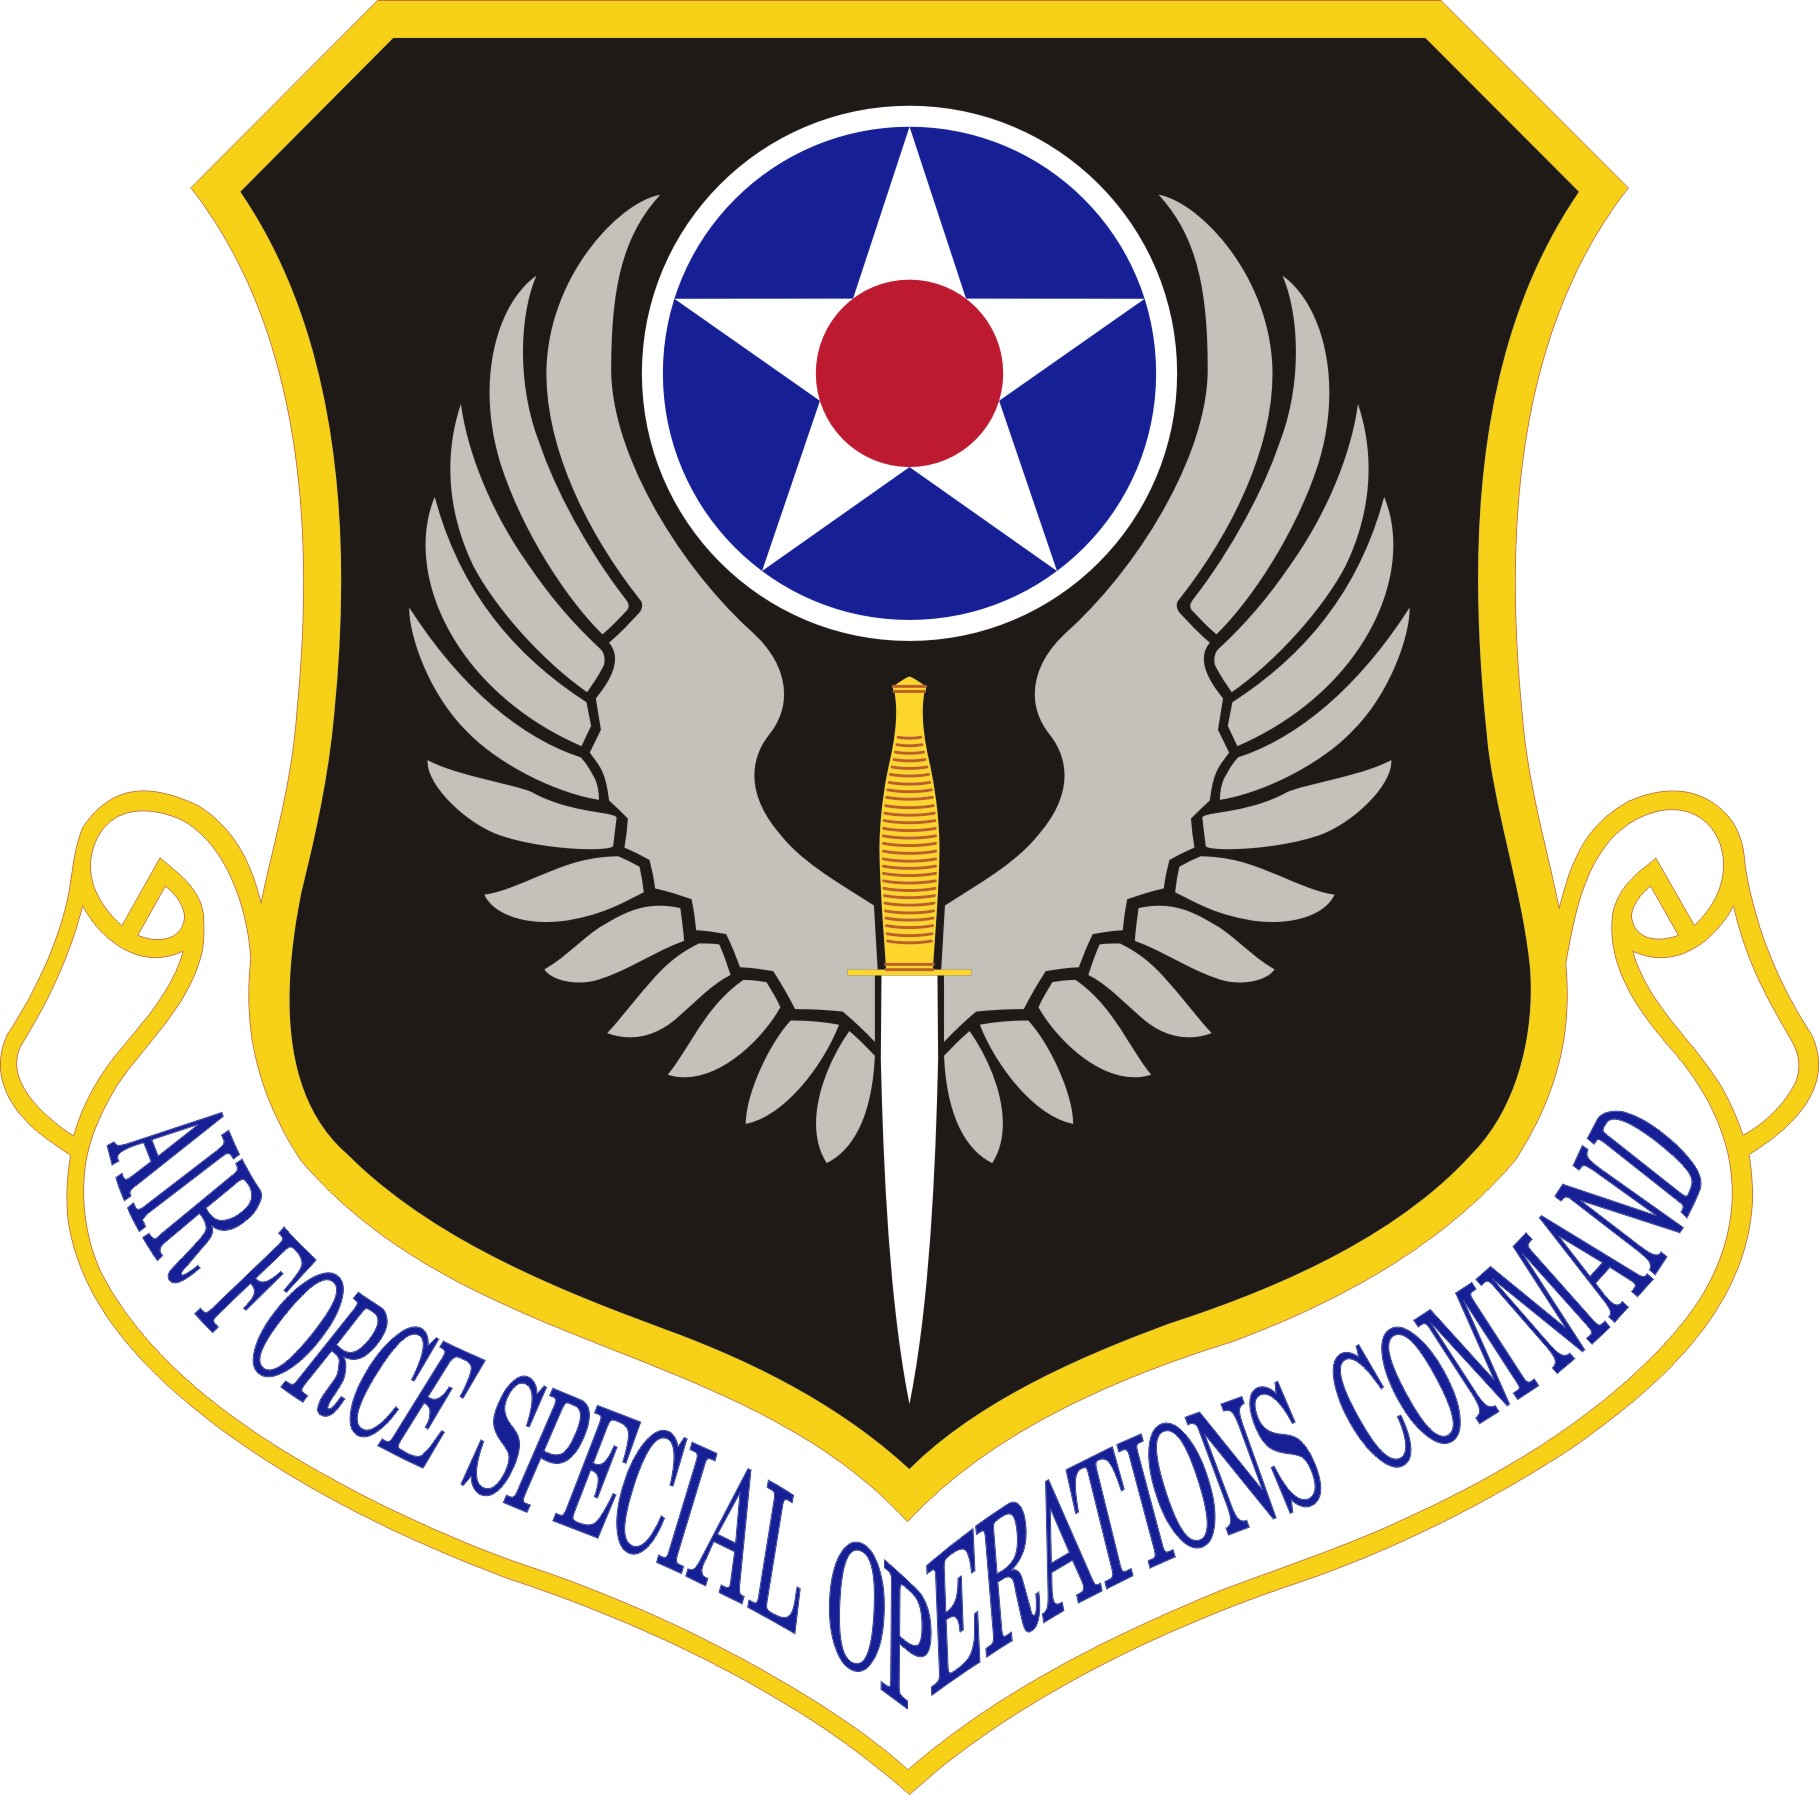 History Of Afsoc Emblem Gt Air Force Special Operations